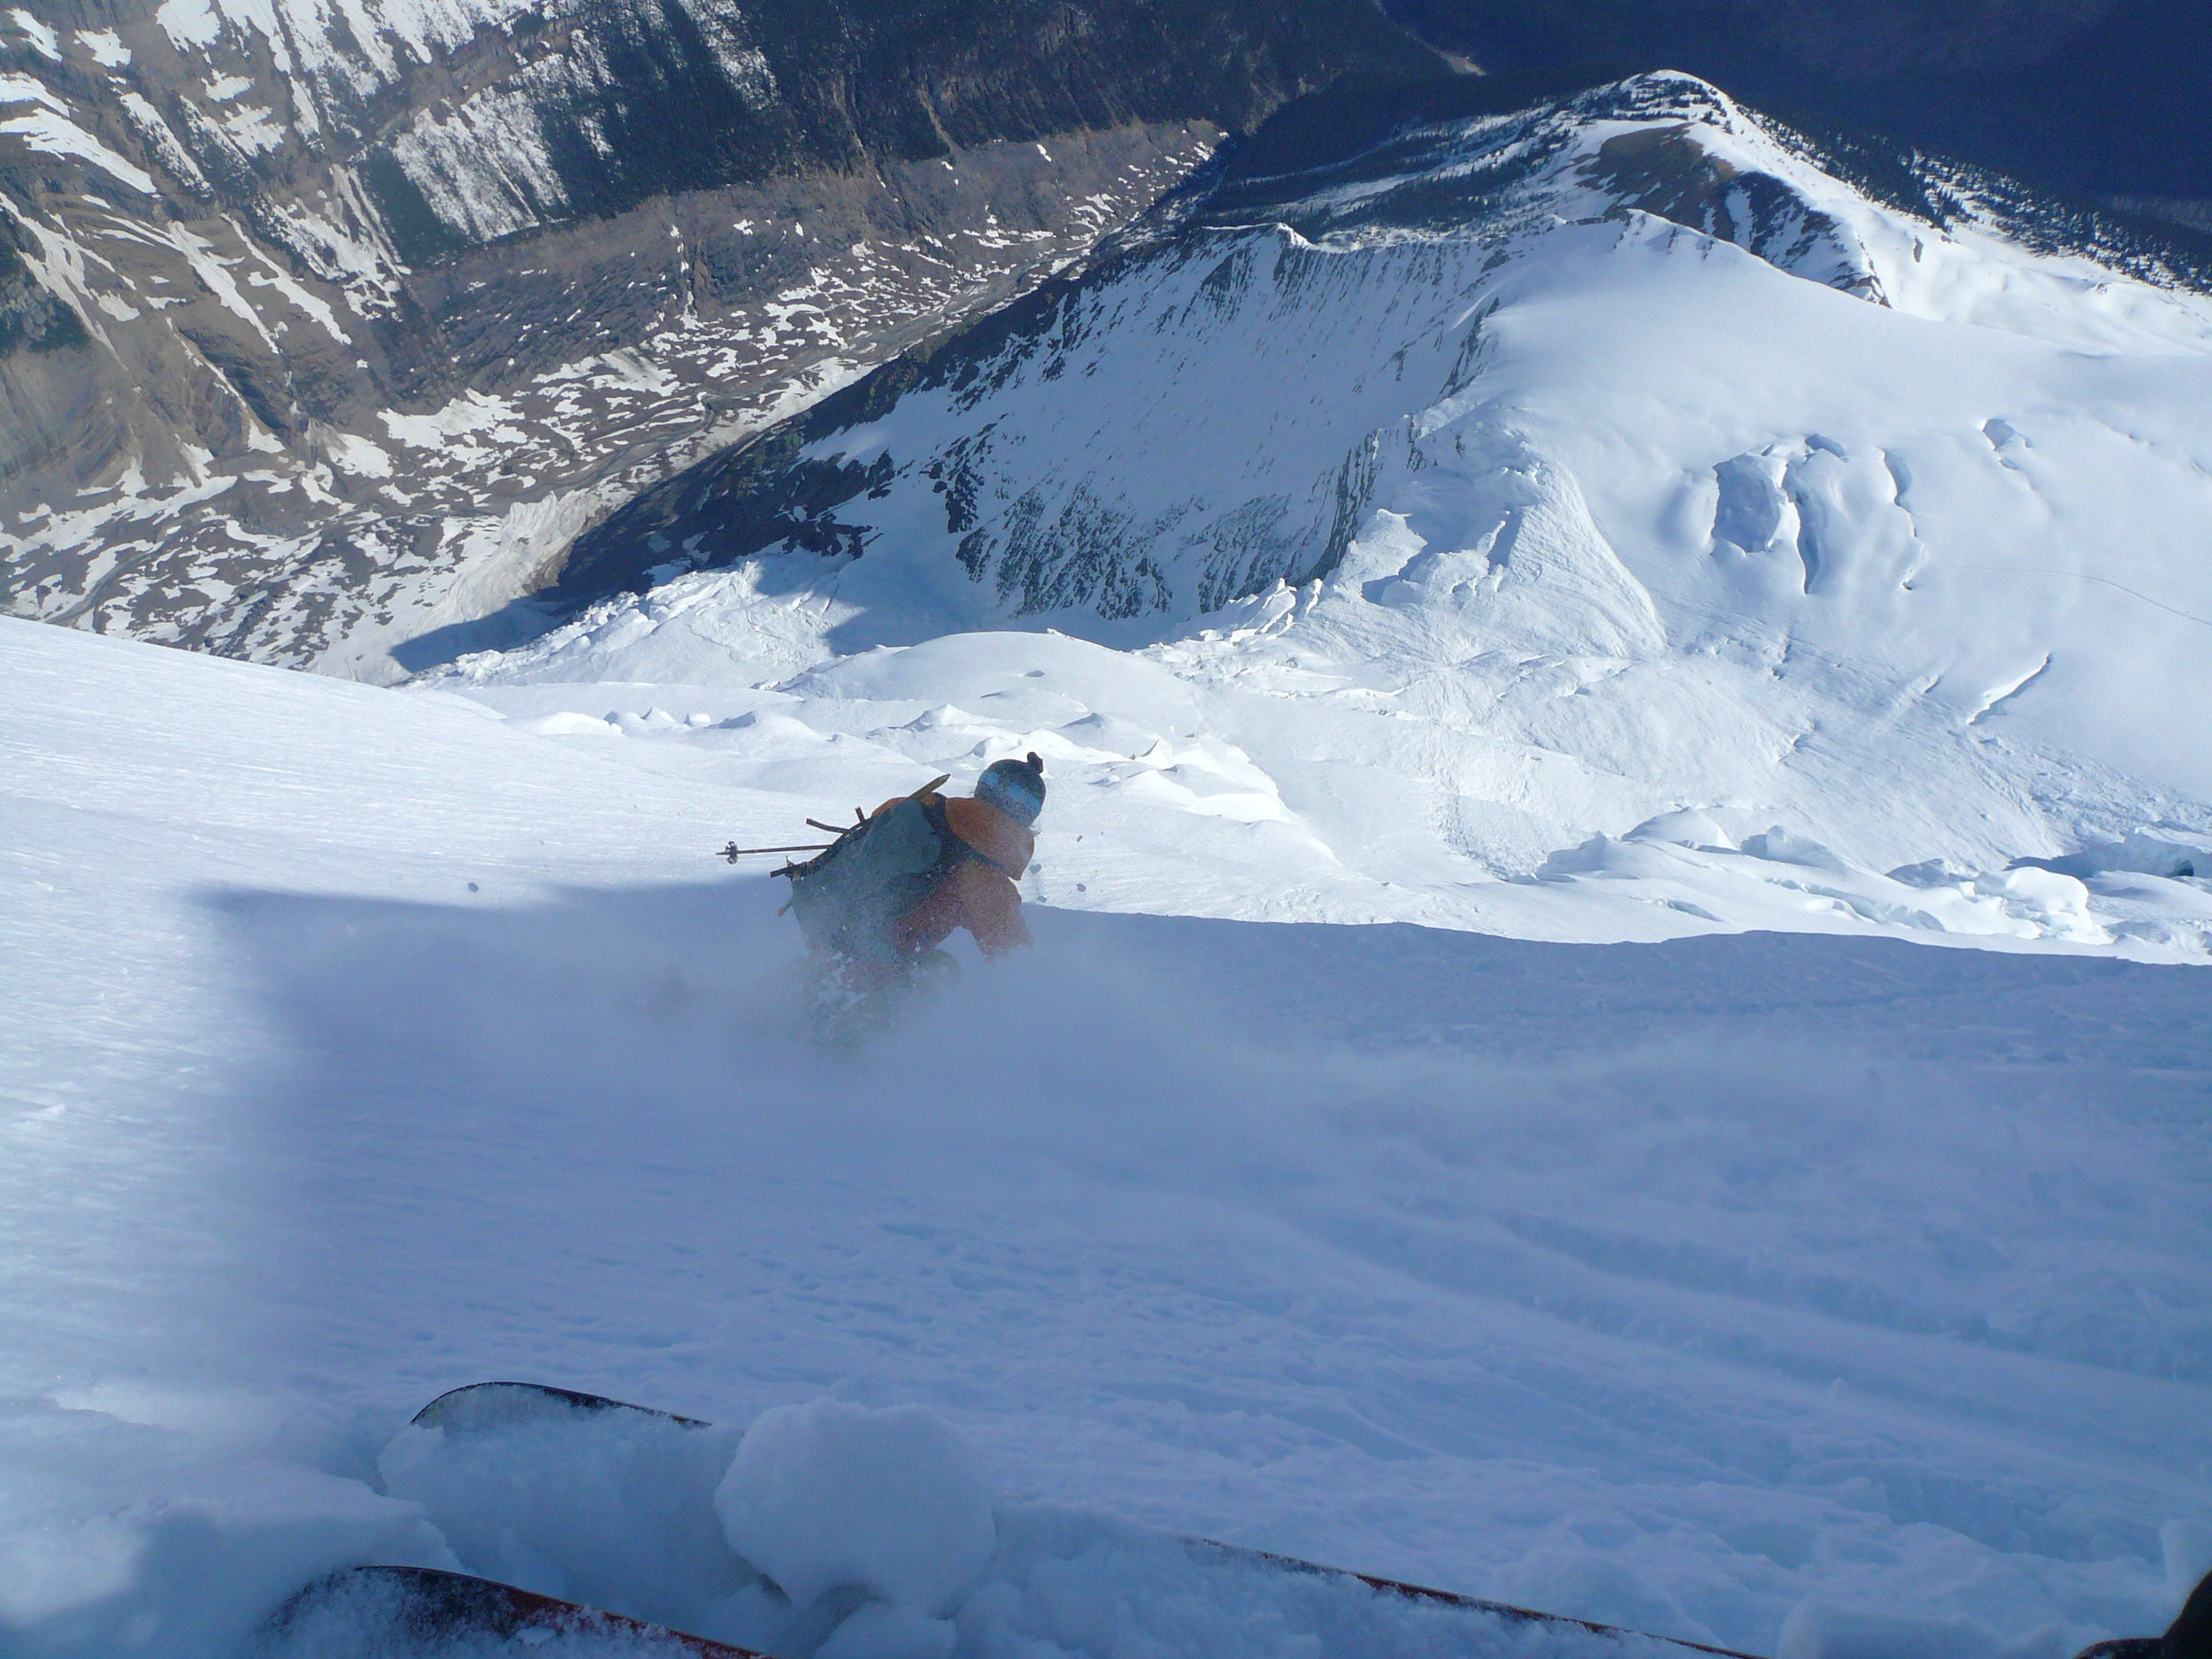 Eric Hjorleifson's first turns on the North Face